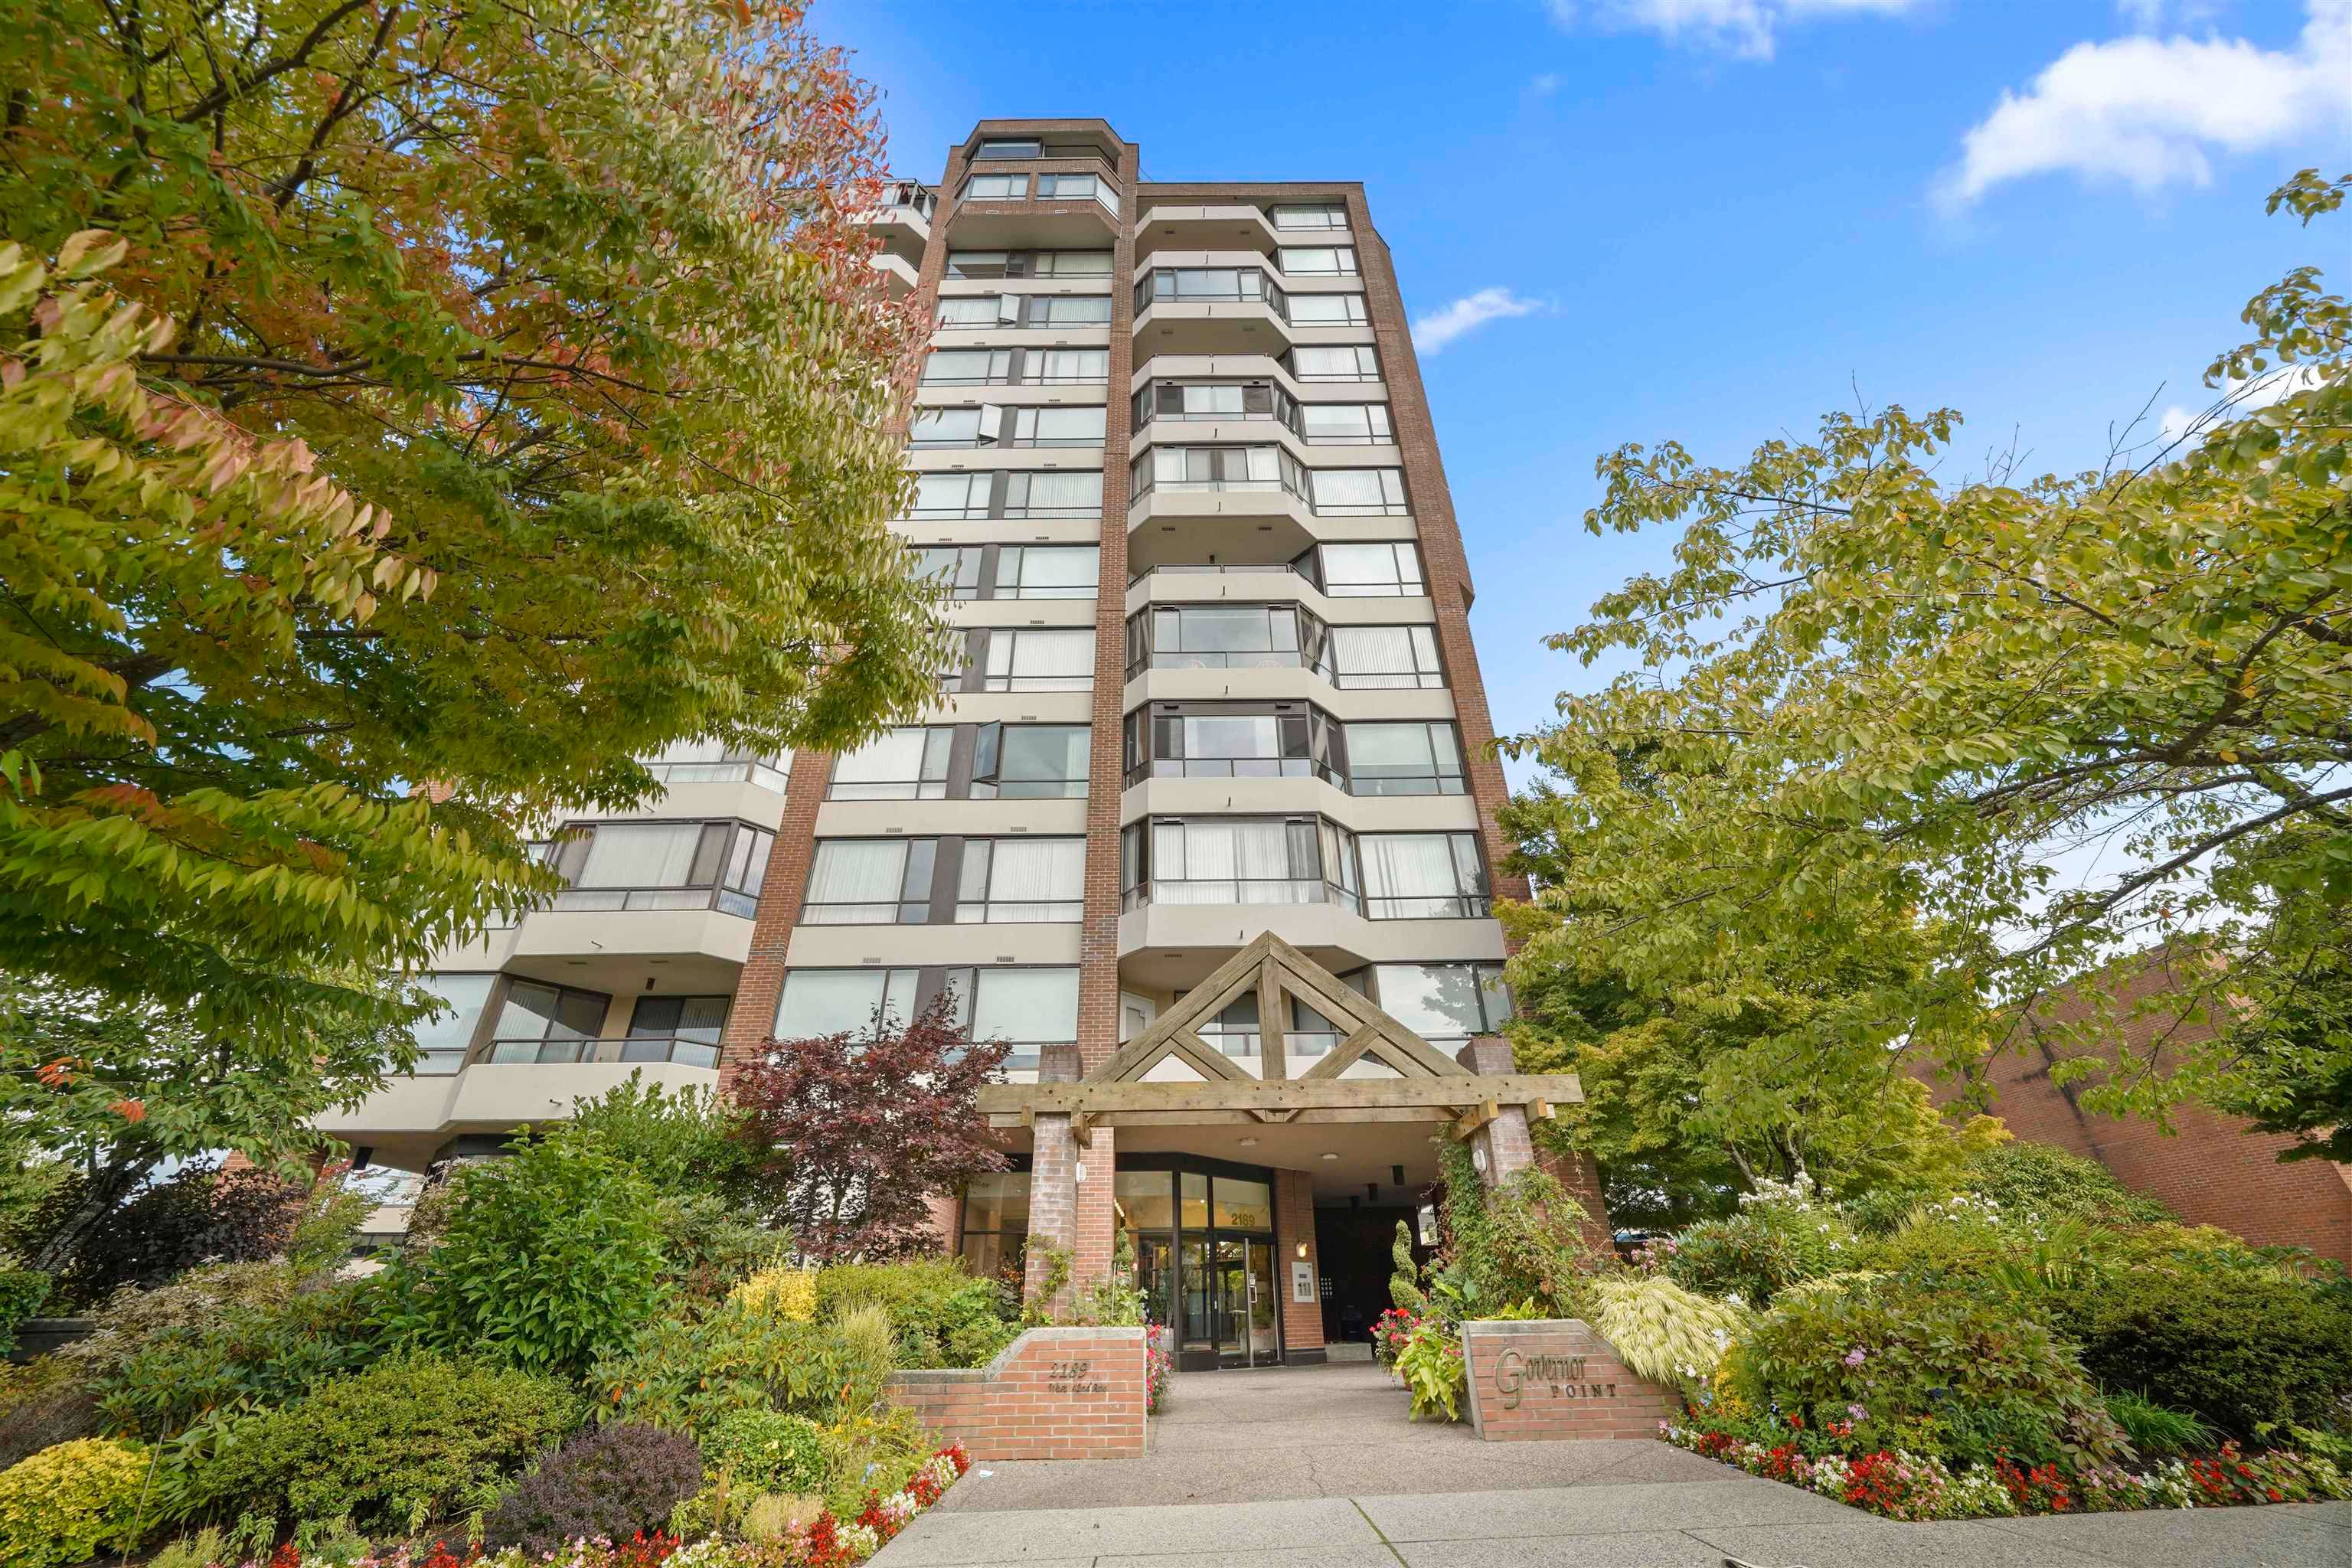 """Main Photo: 503 2189 W 42ND Avenue in Vancouver: Kerrisdale Condo for sale in """"Governor Point"""" (Vancouver West)  : MLS®# R2622142"""